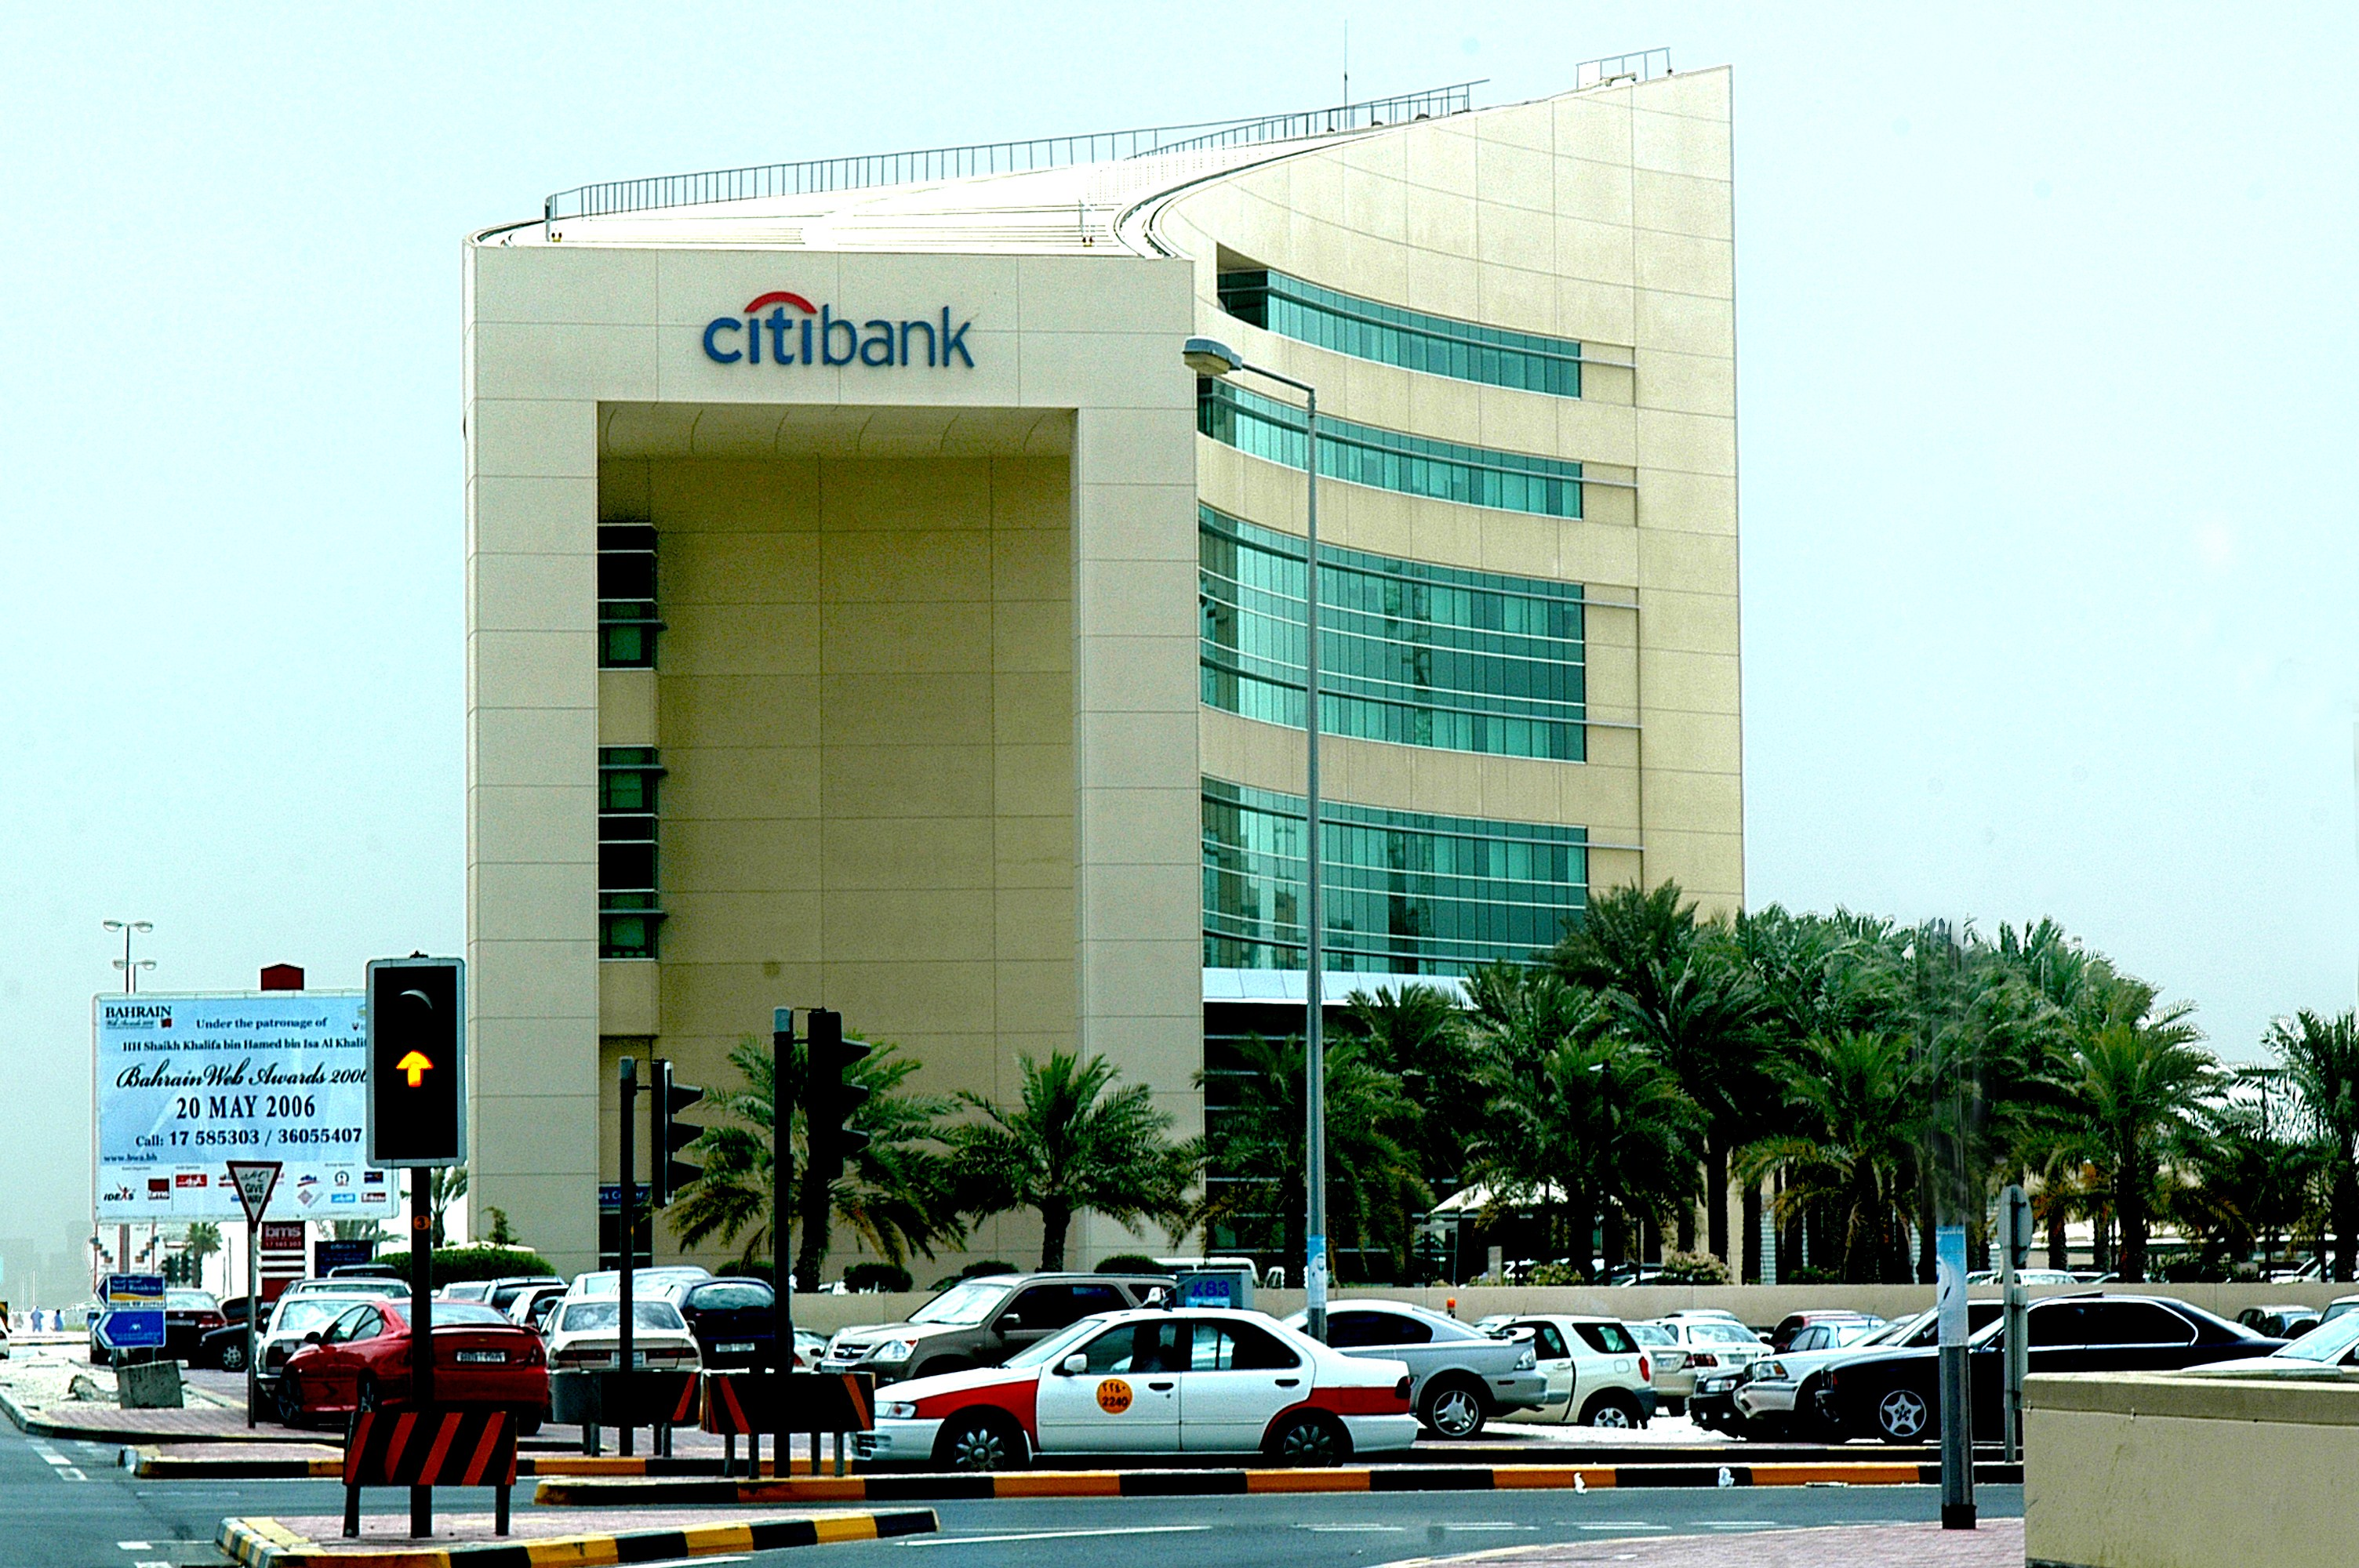 Citi Bank H.Q. at Seef